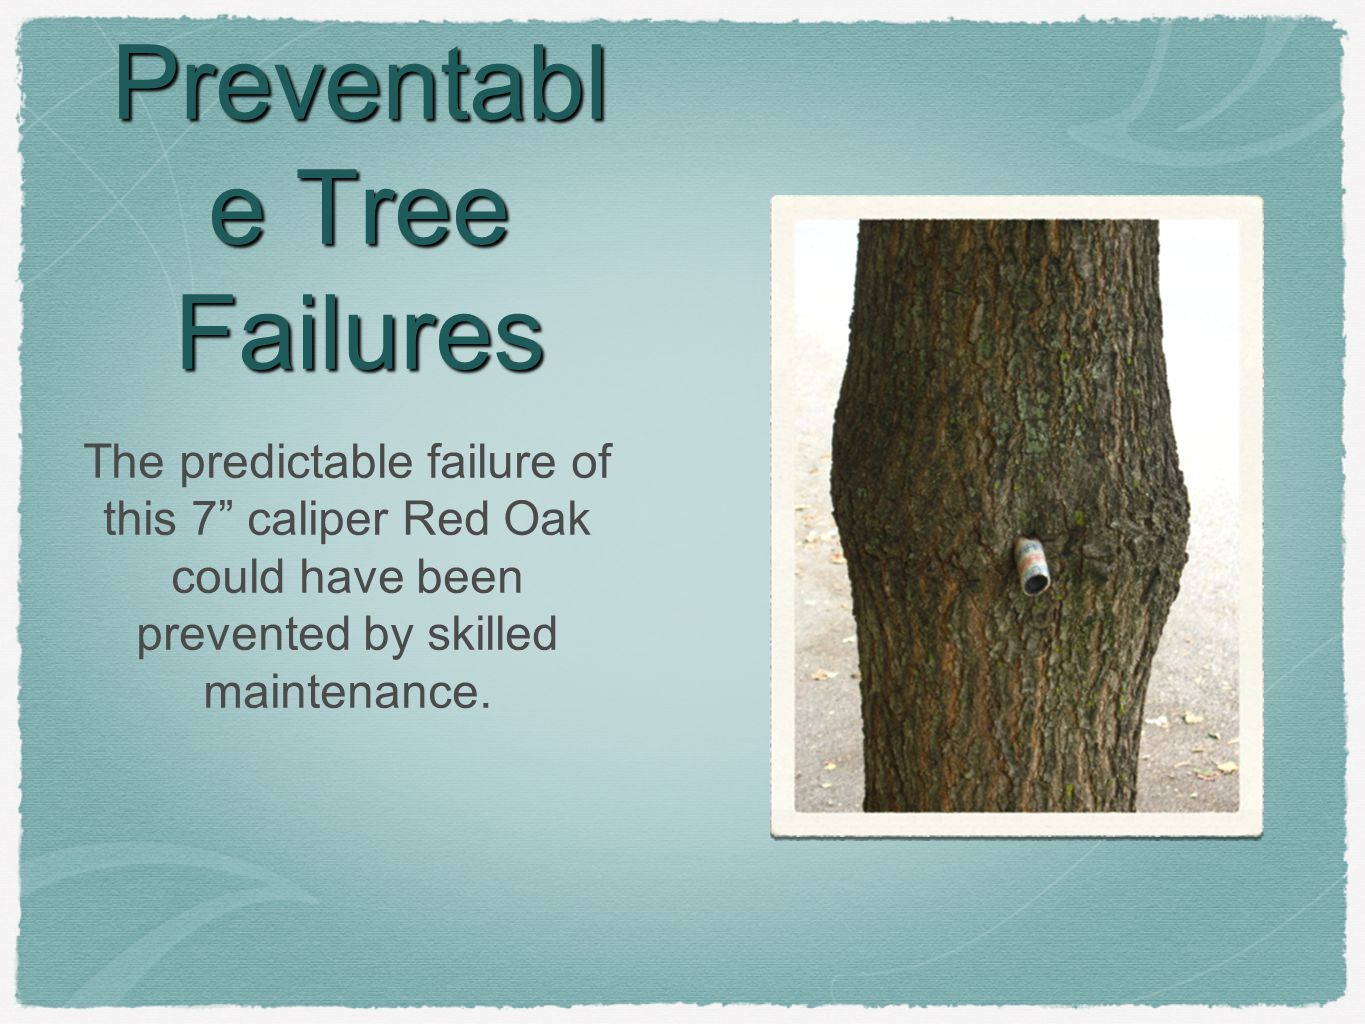 Preventabl e Tree Failures The predictable failure of this 7 caliper Red Oak could have been prevented by skilled maintenance.